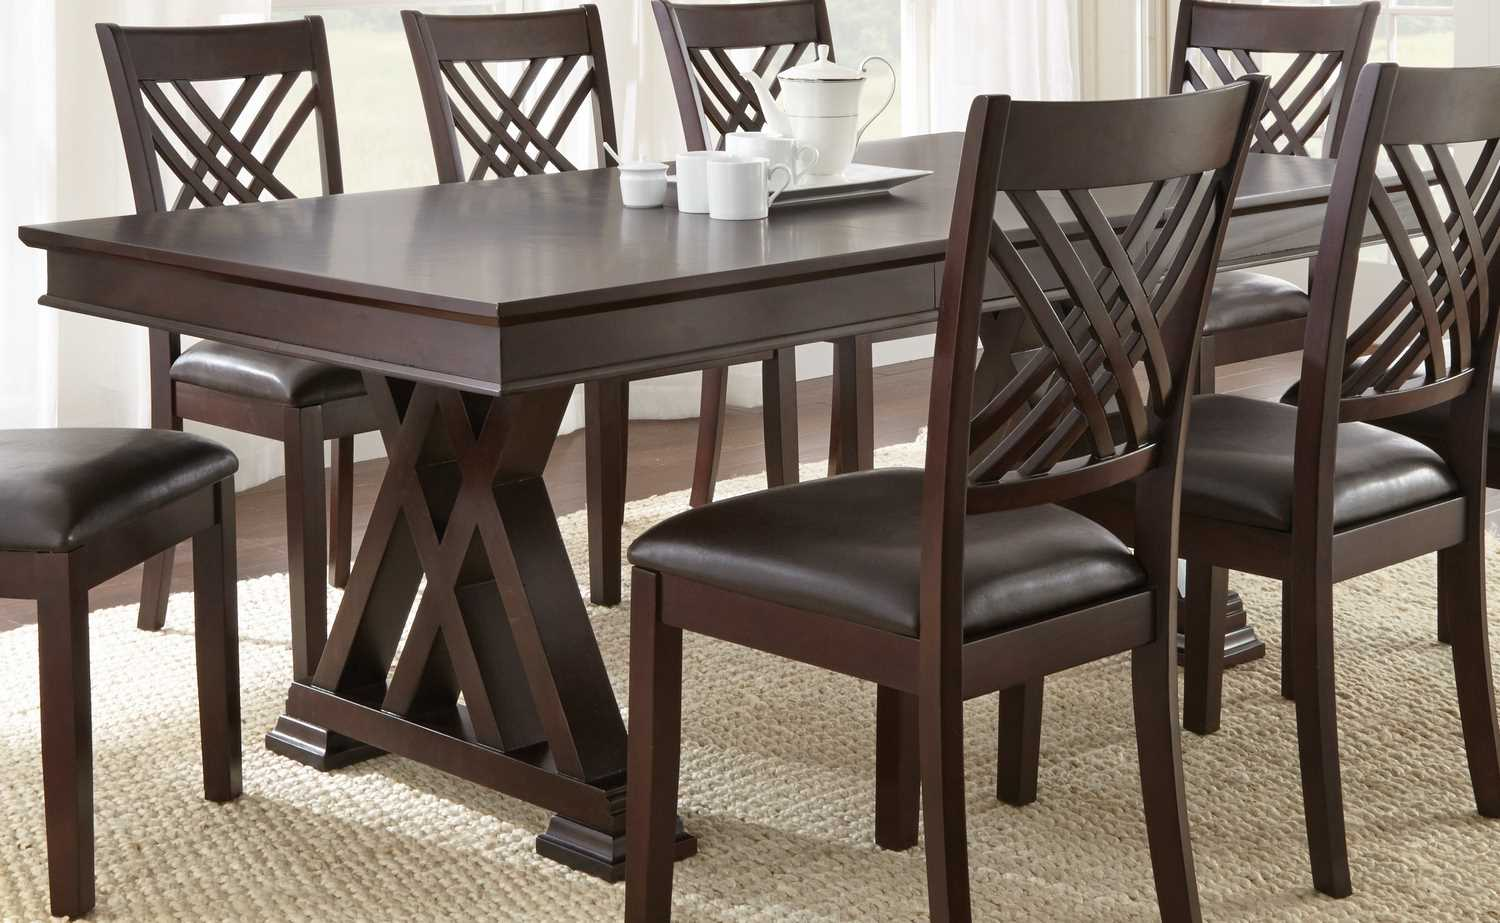 adrian 9 piece 78x42 rectangular dining room set efurniture mart